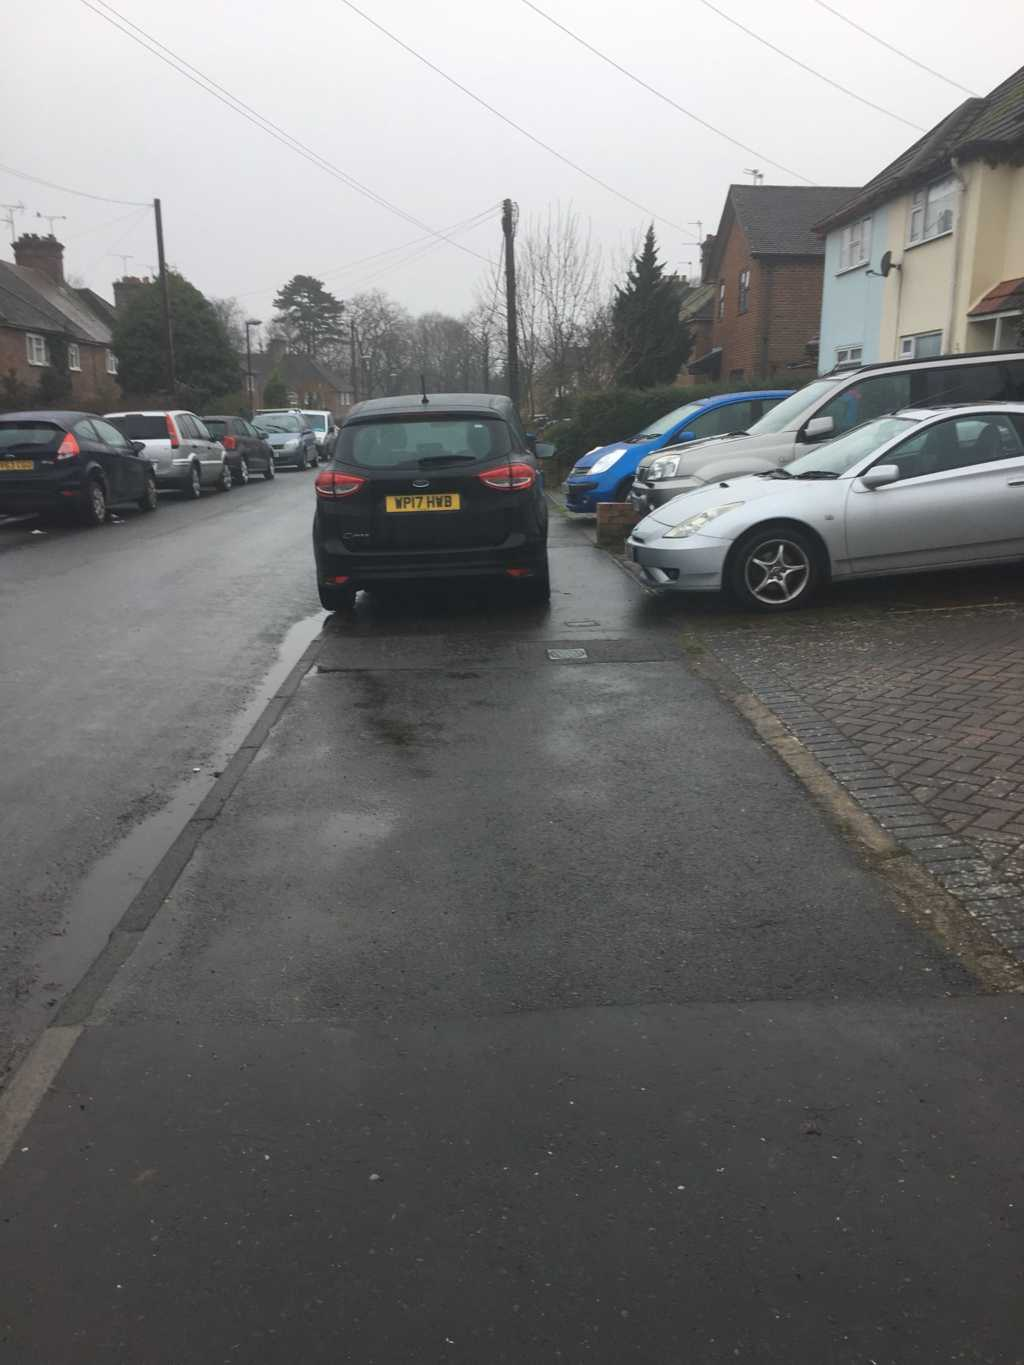 WP17 HWB is an Inconsiderate Parker